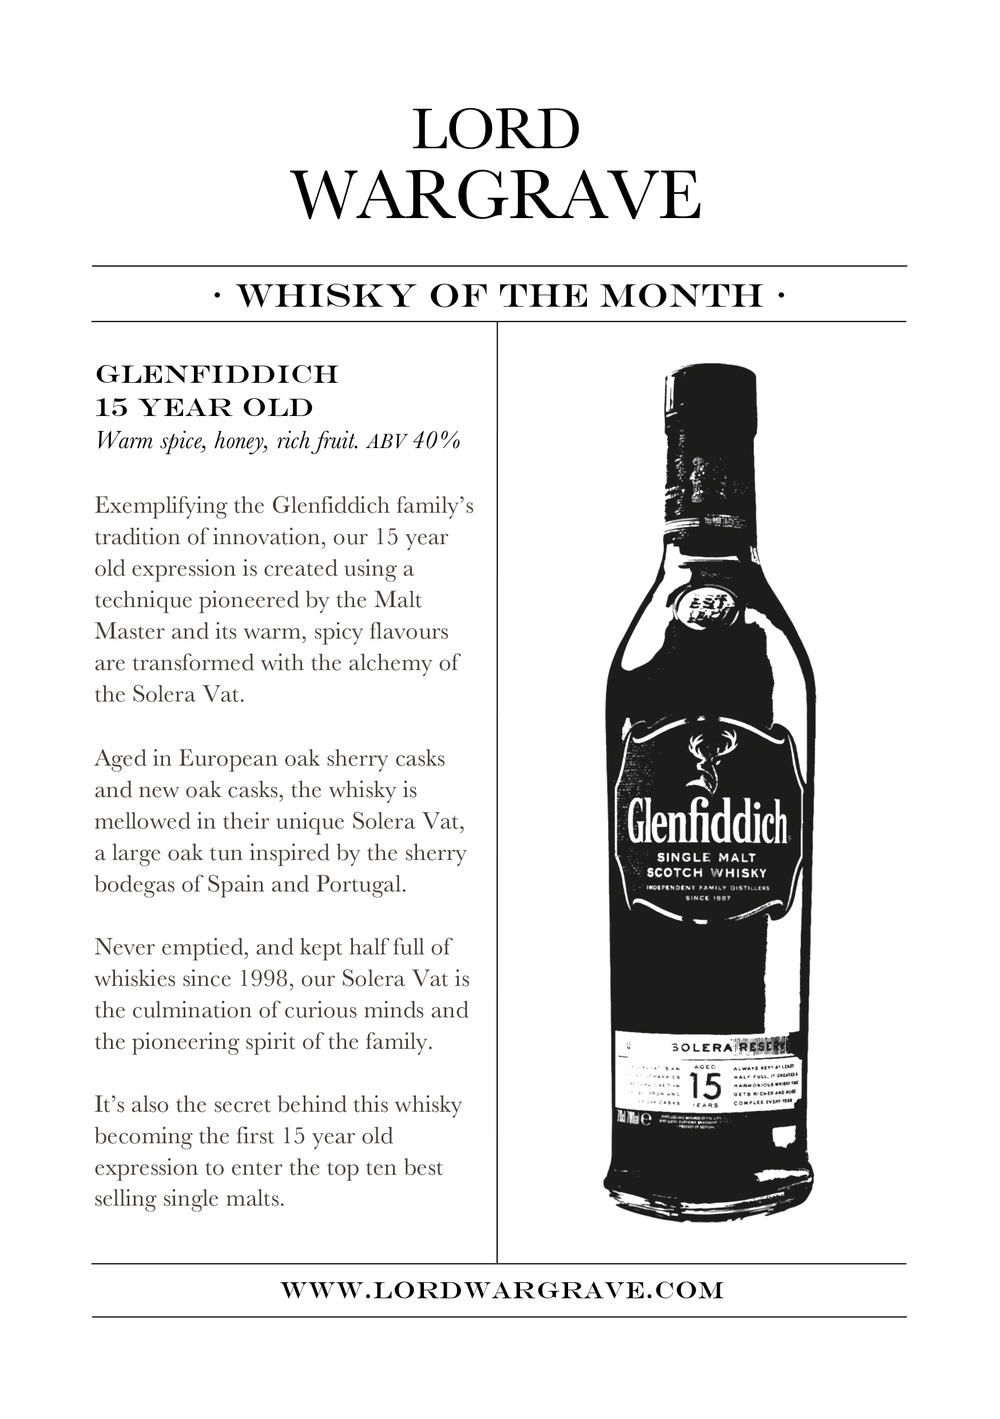 Whiskey of the month - Glenfiddich 15 year old